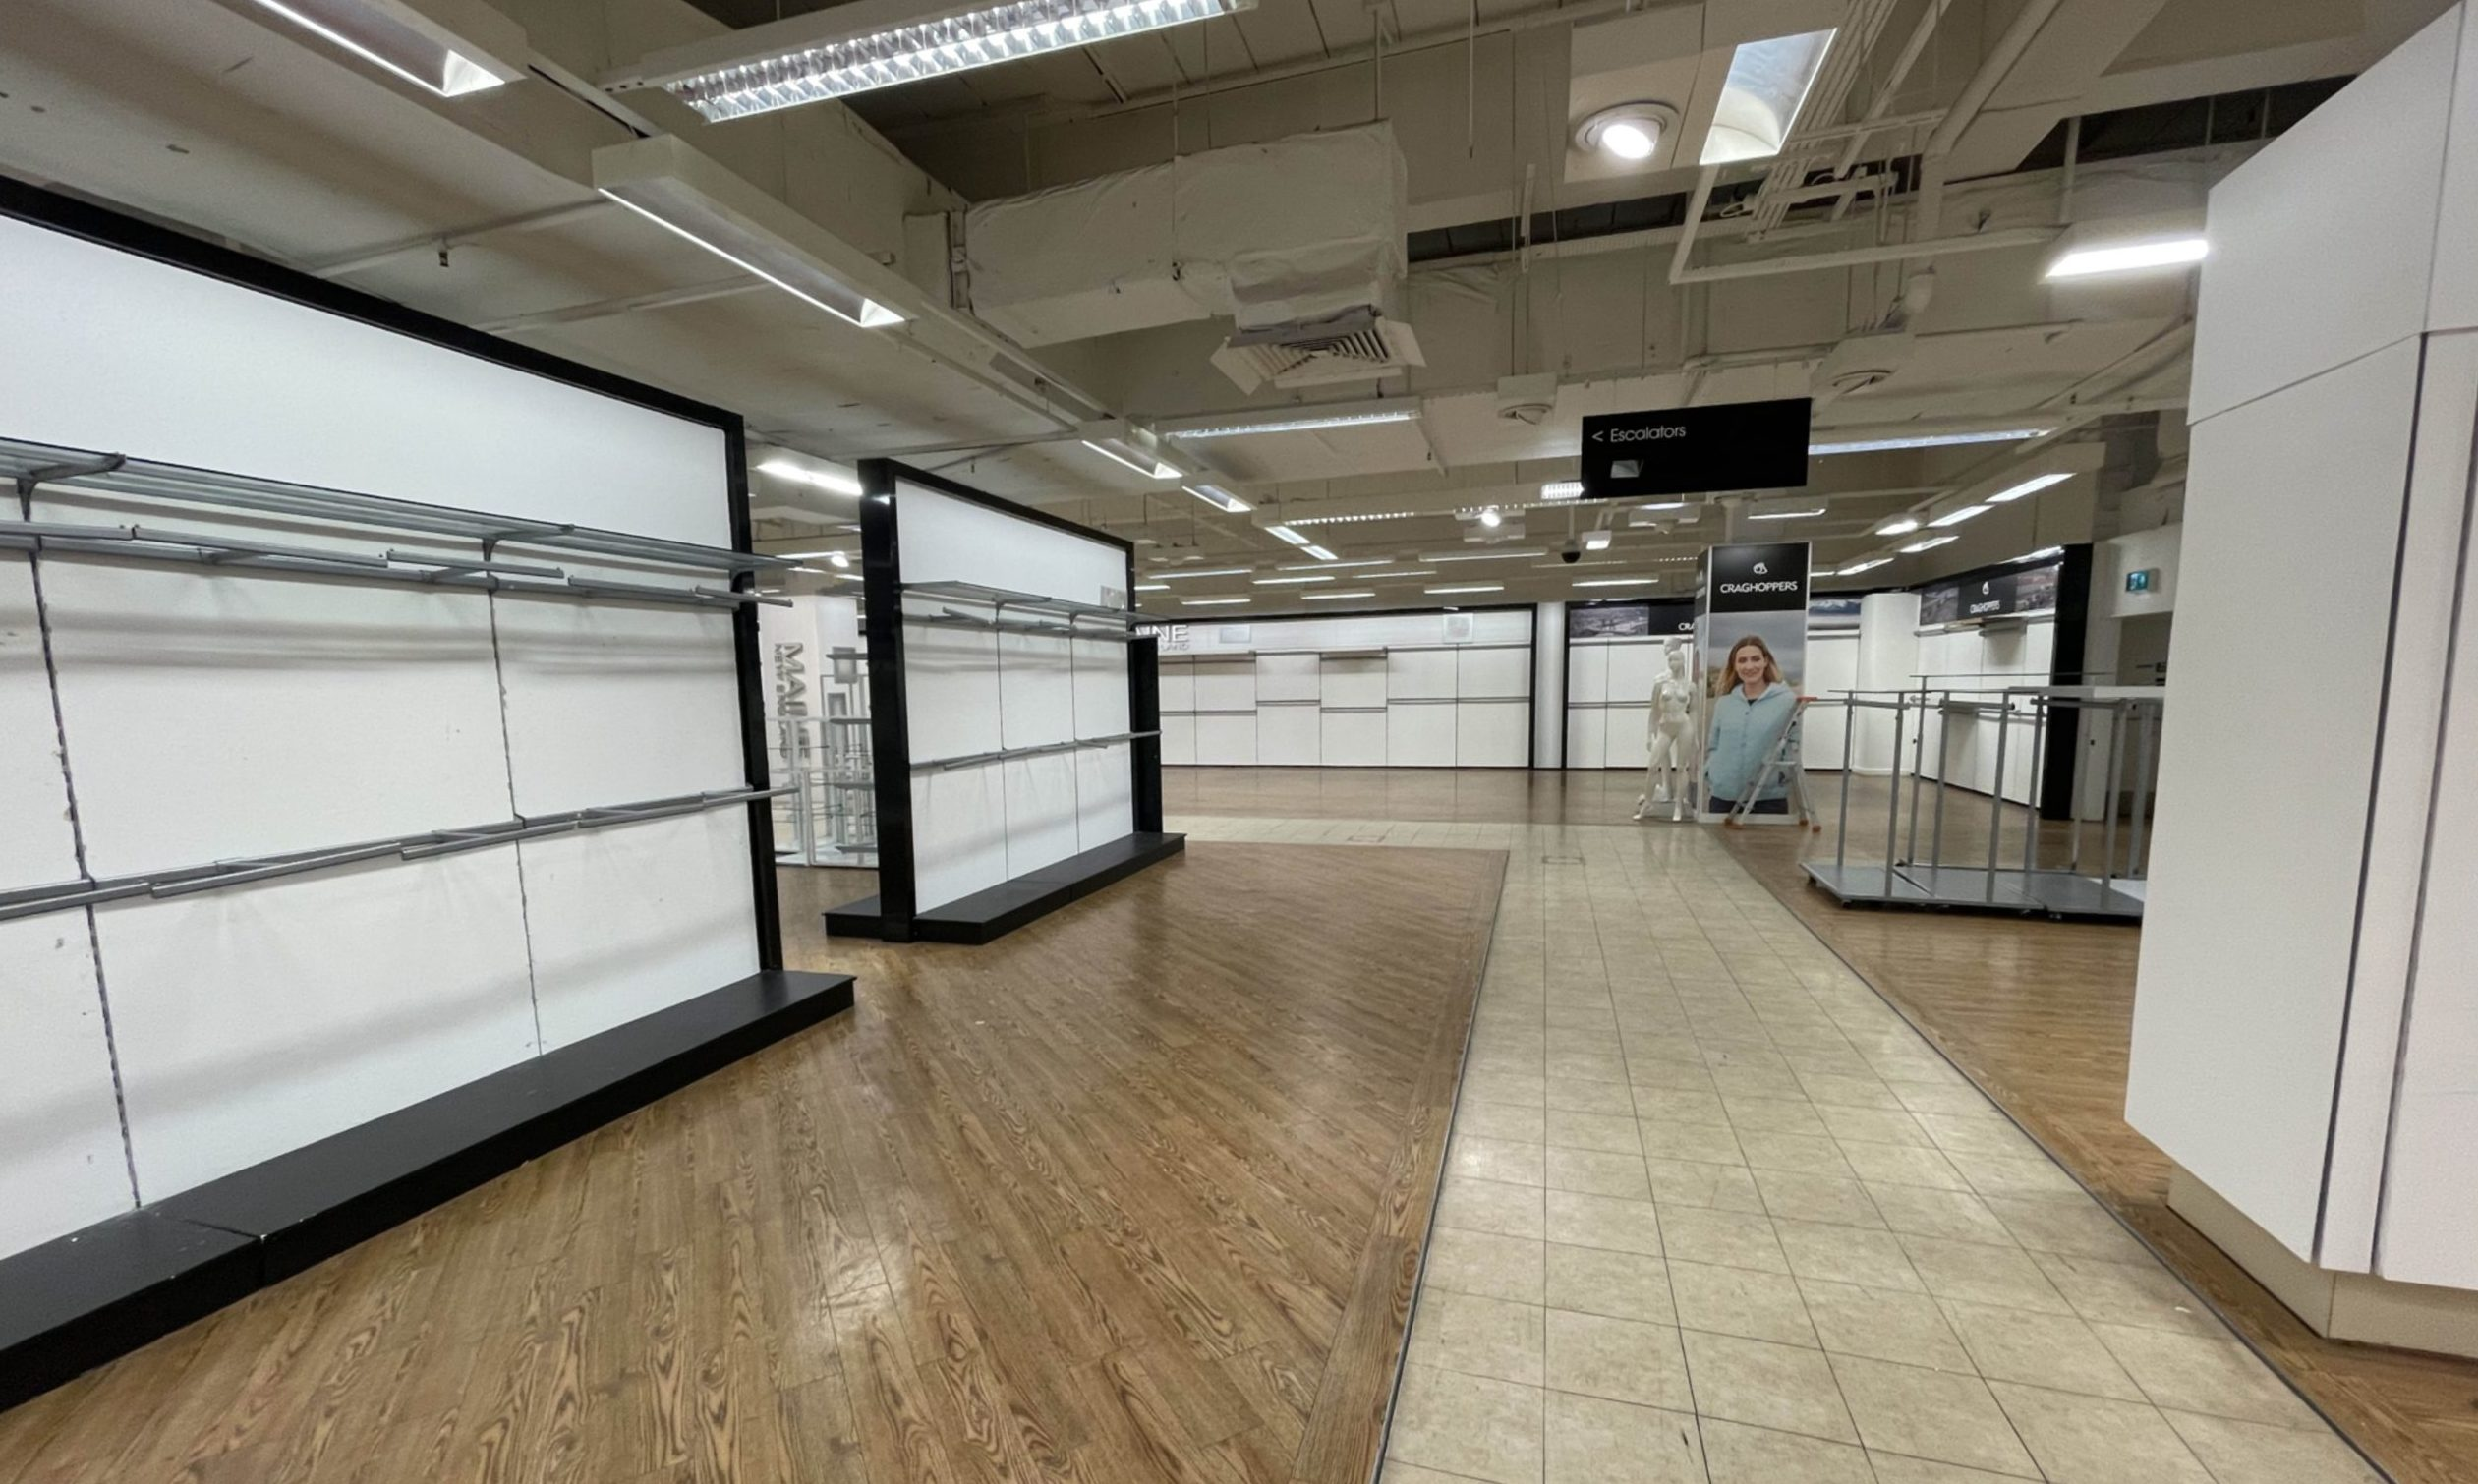 All stock was removed from the Aberdeen branch of Debenhams when it closed.